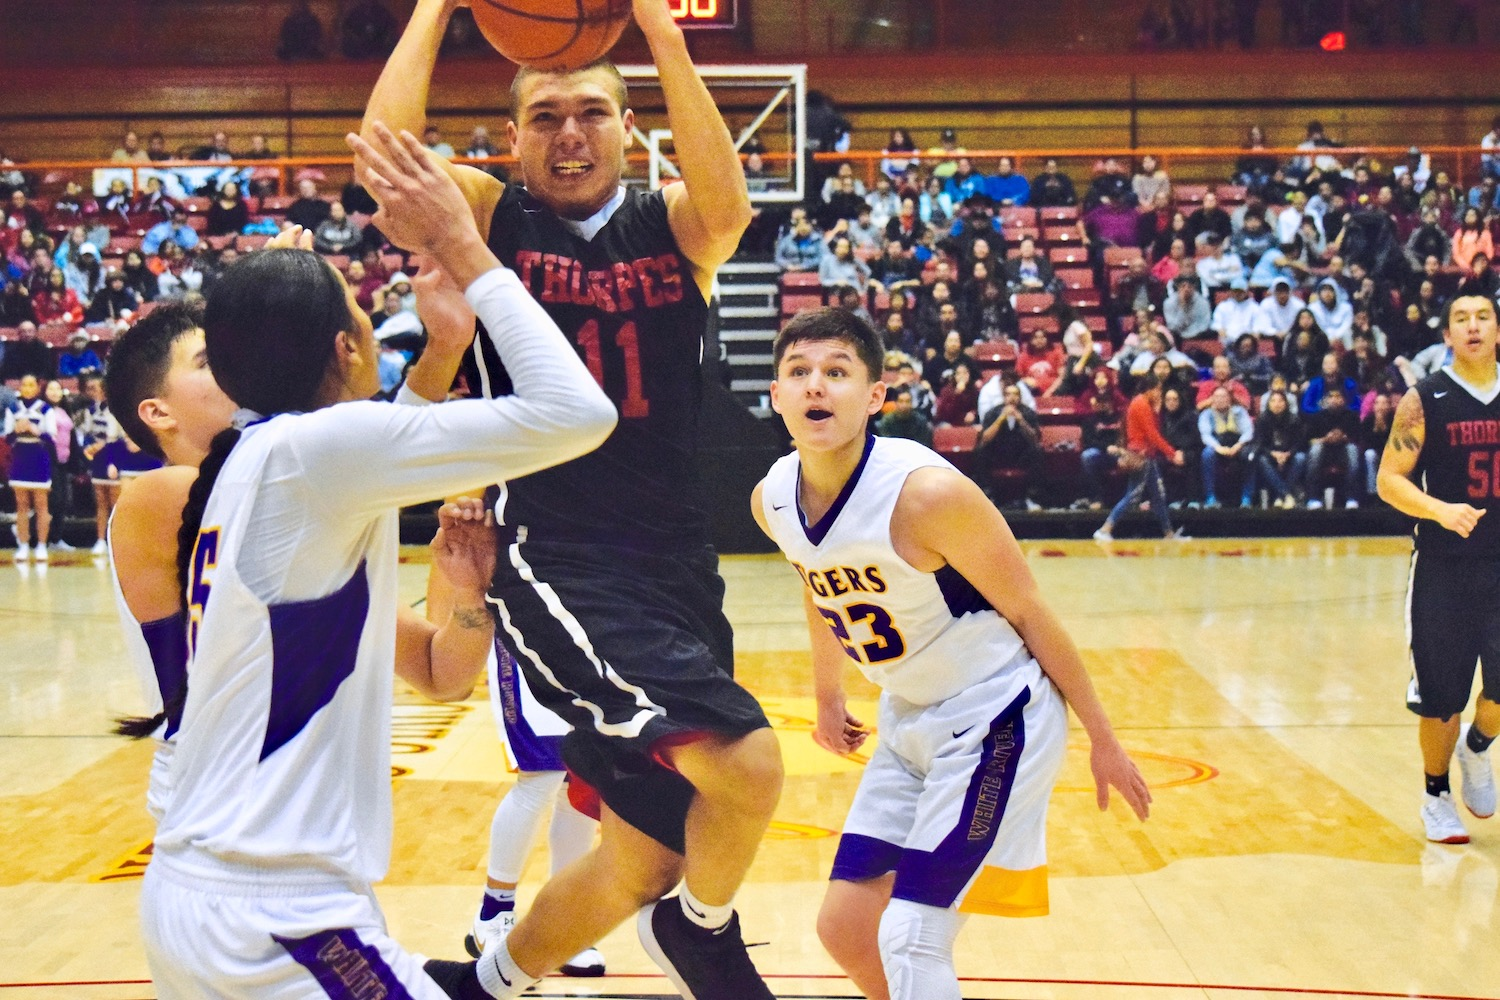 Native Sun News Today: Lakota Nation Invitational ends with overtime thriller